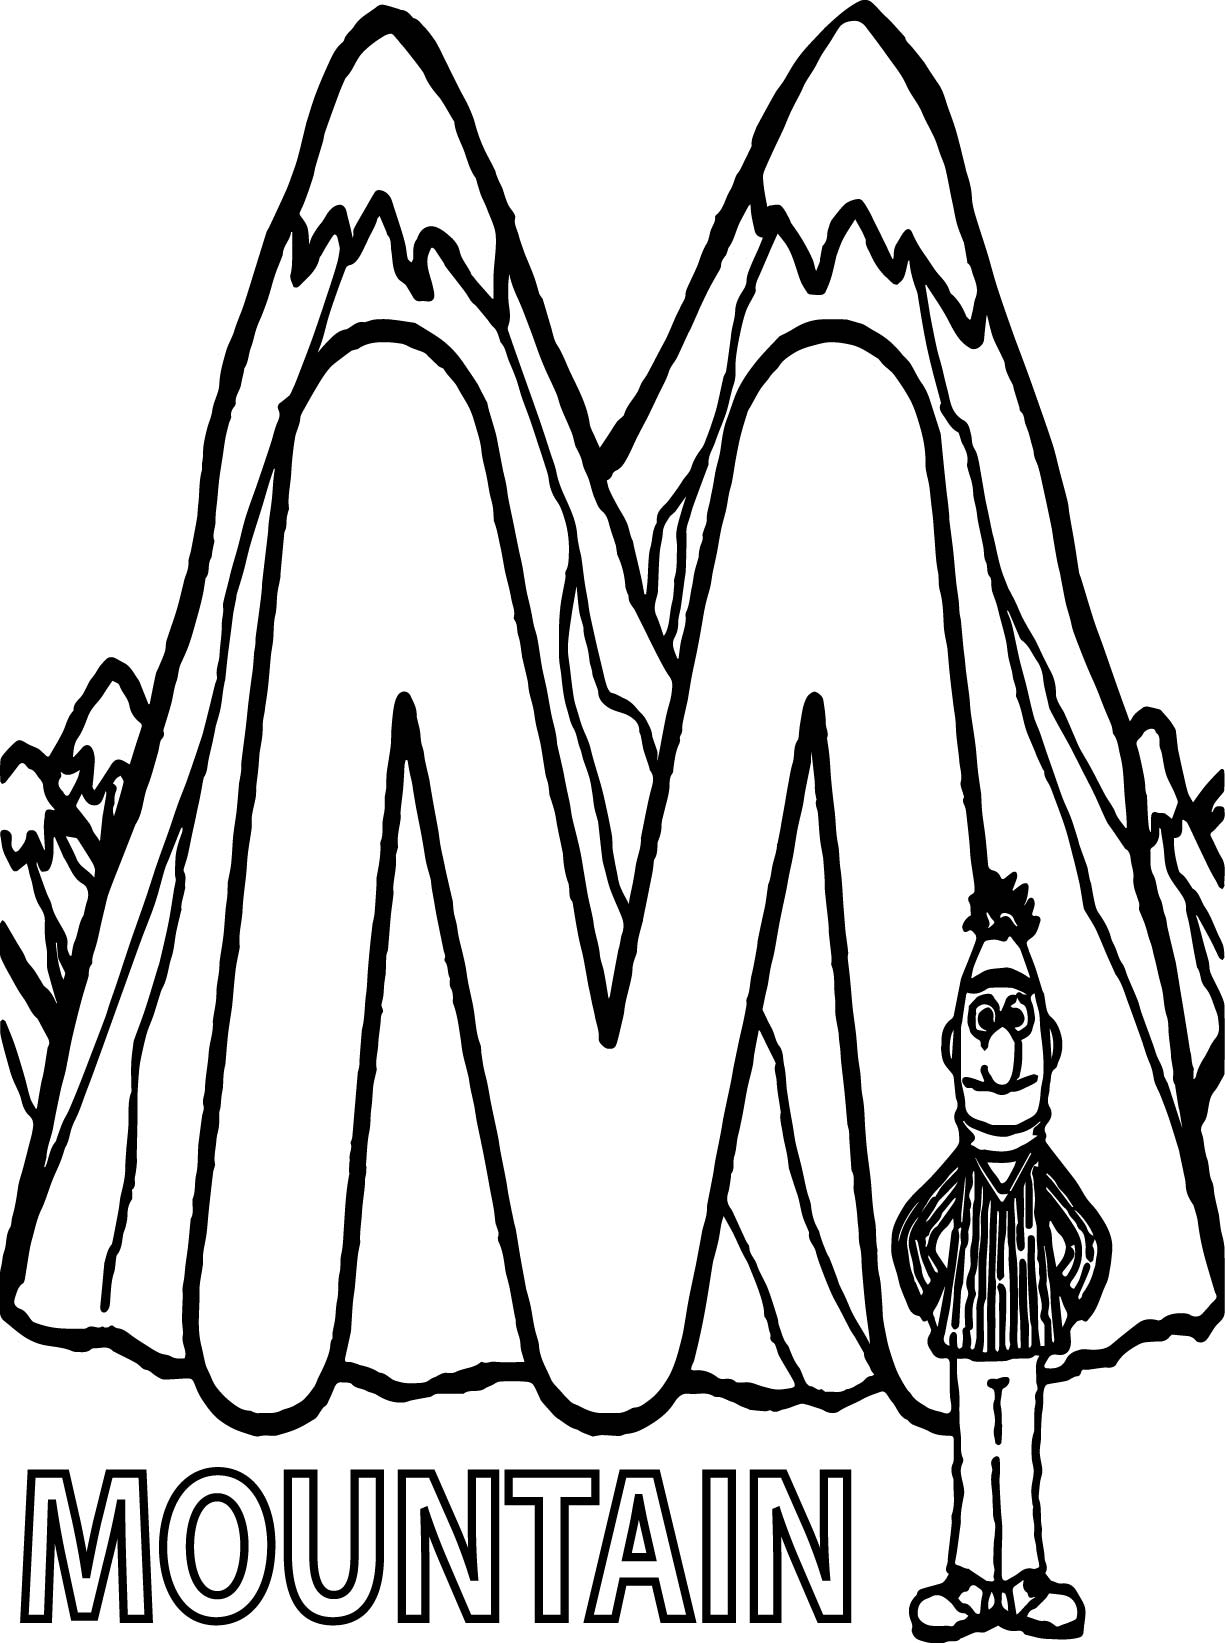 Learn Letter M For Mountain In Sesame Street Coloring Page ...